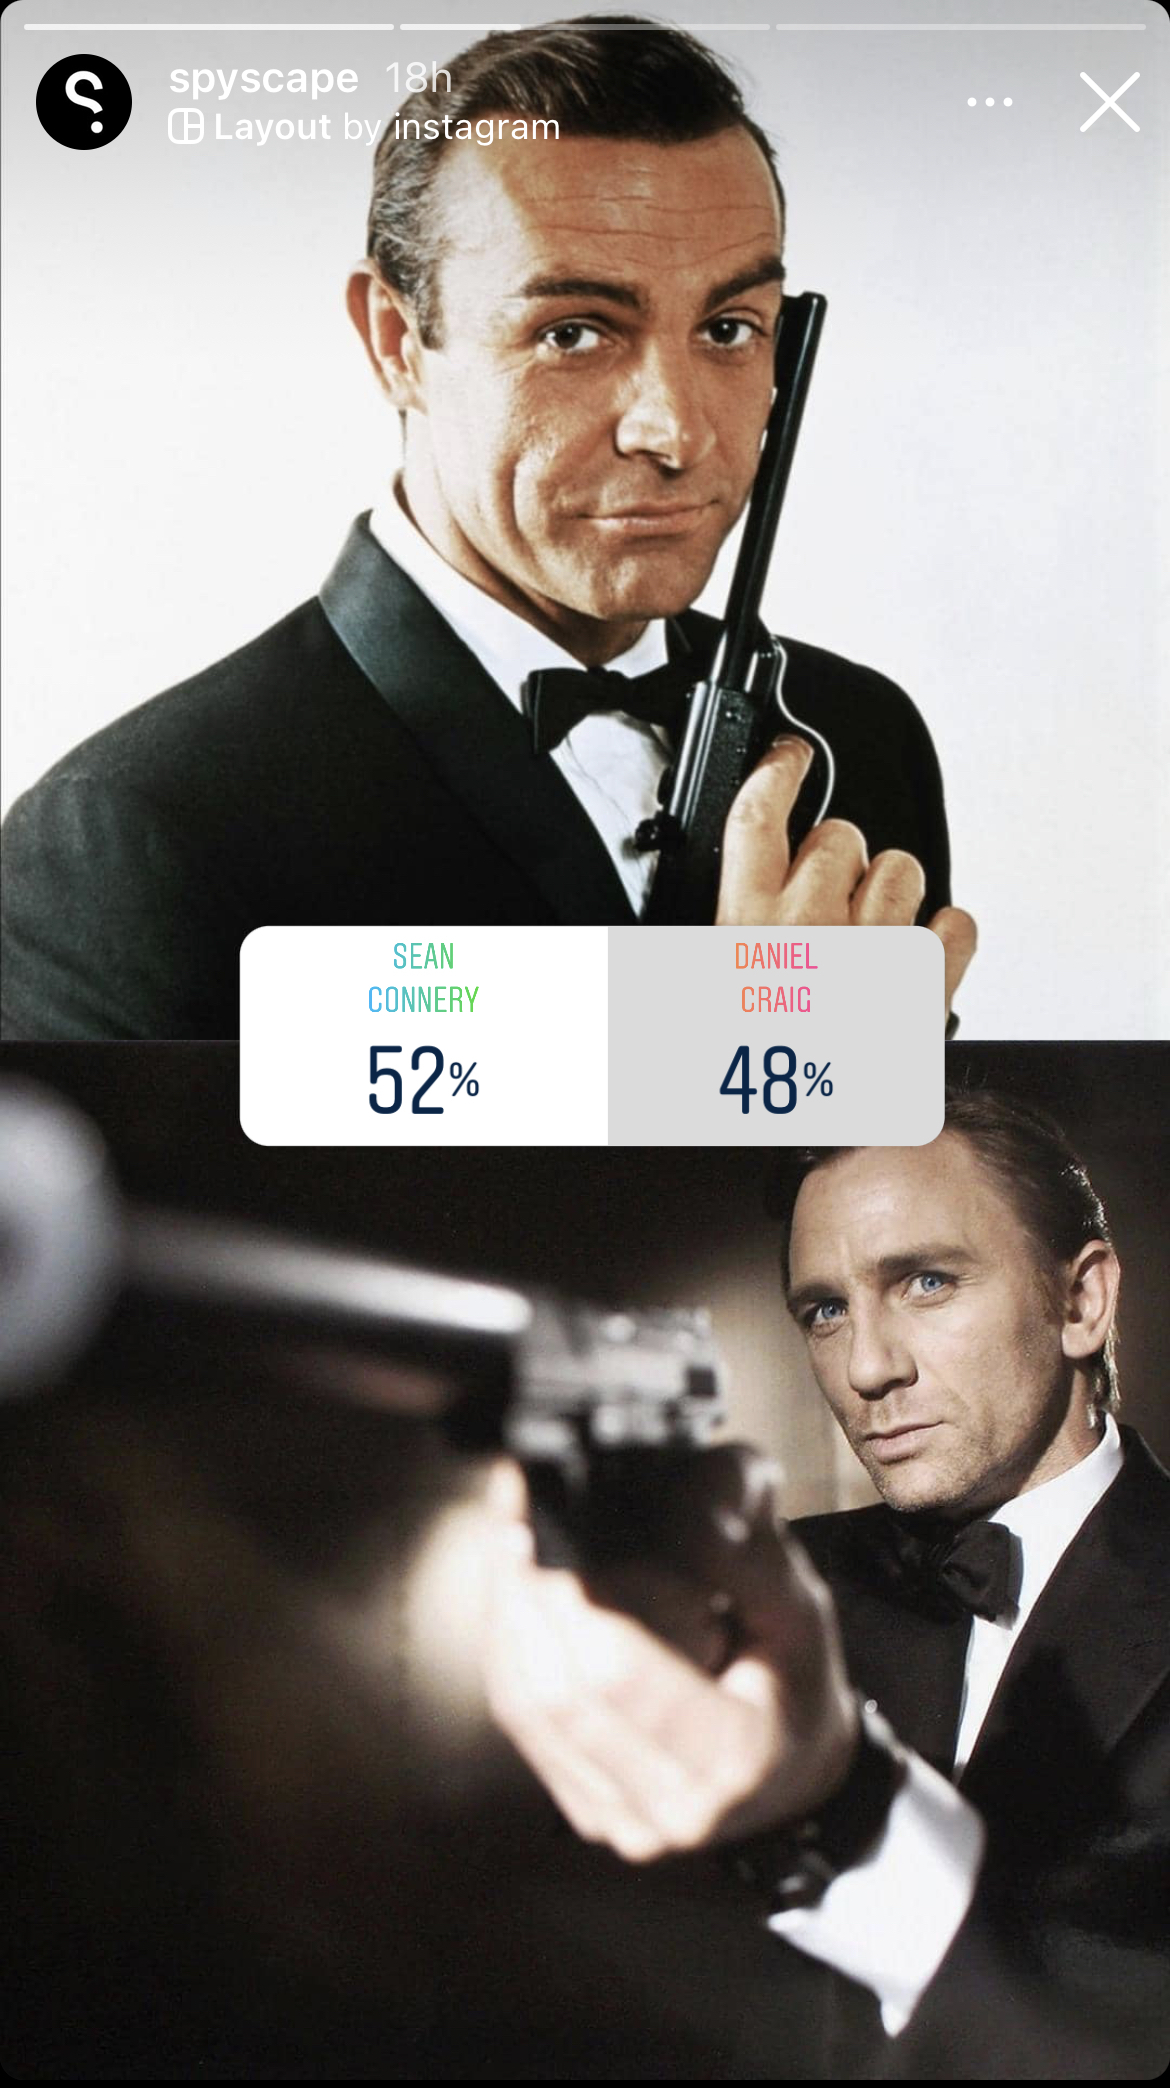 Sean Connery wins vote for the best Bond over Daniel Craig